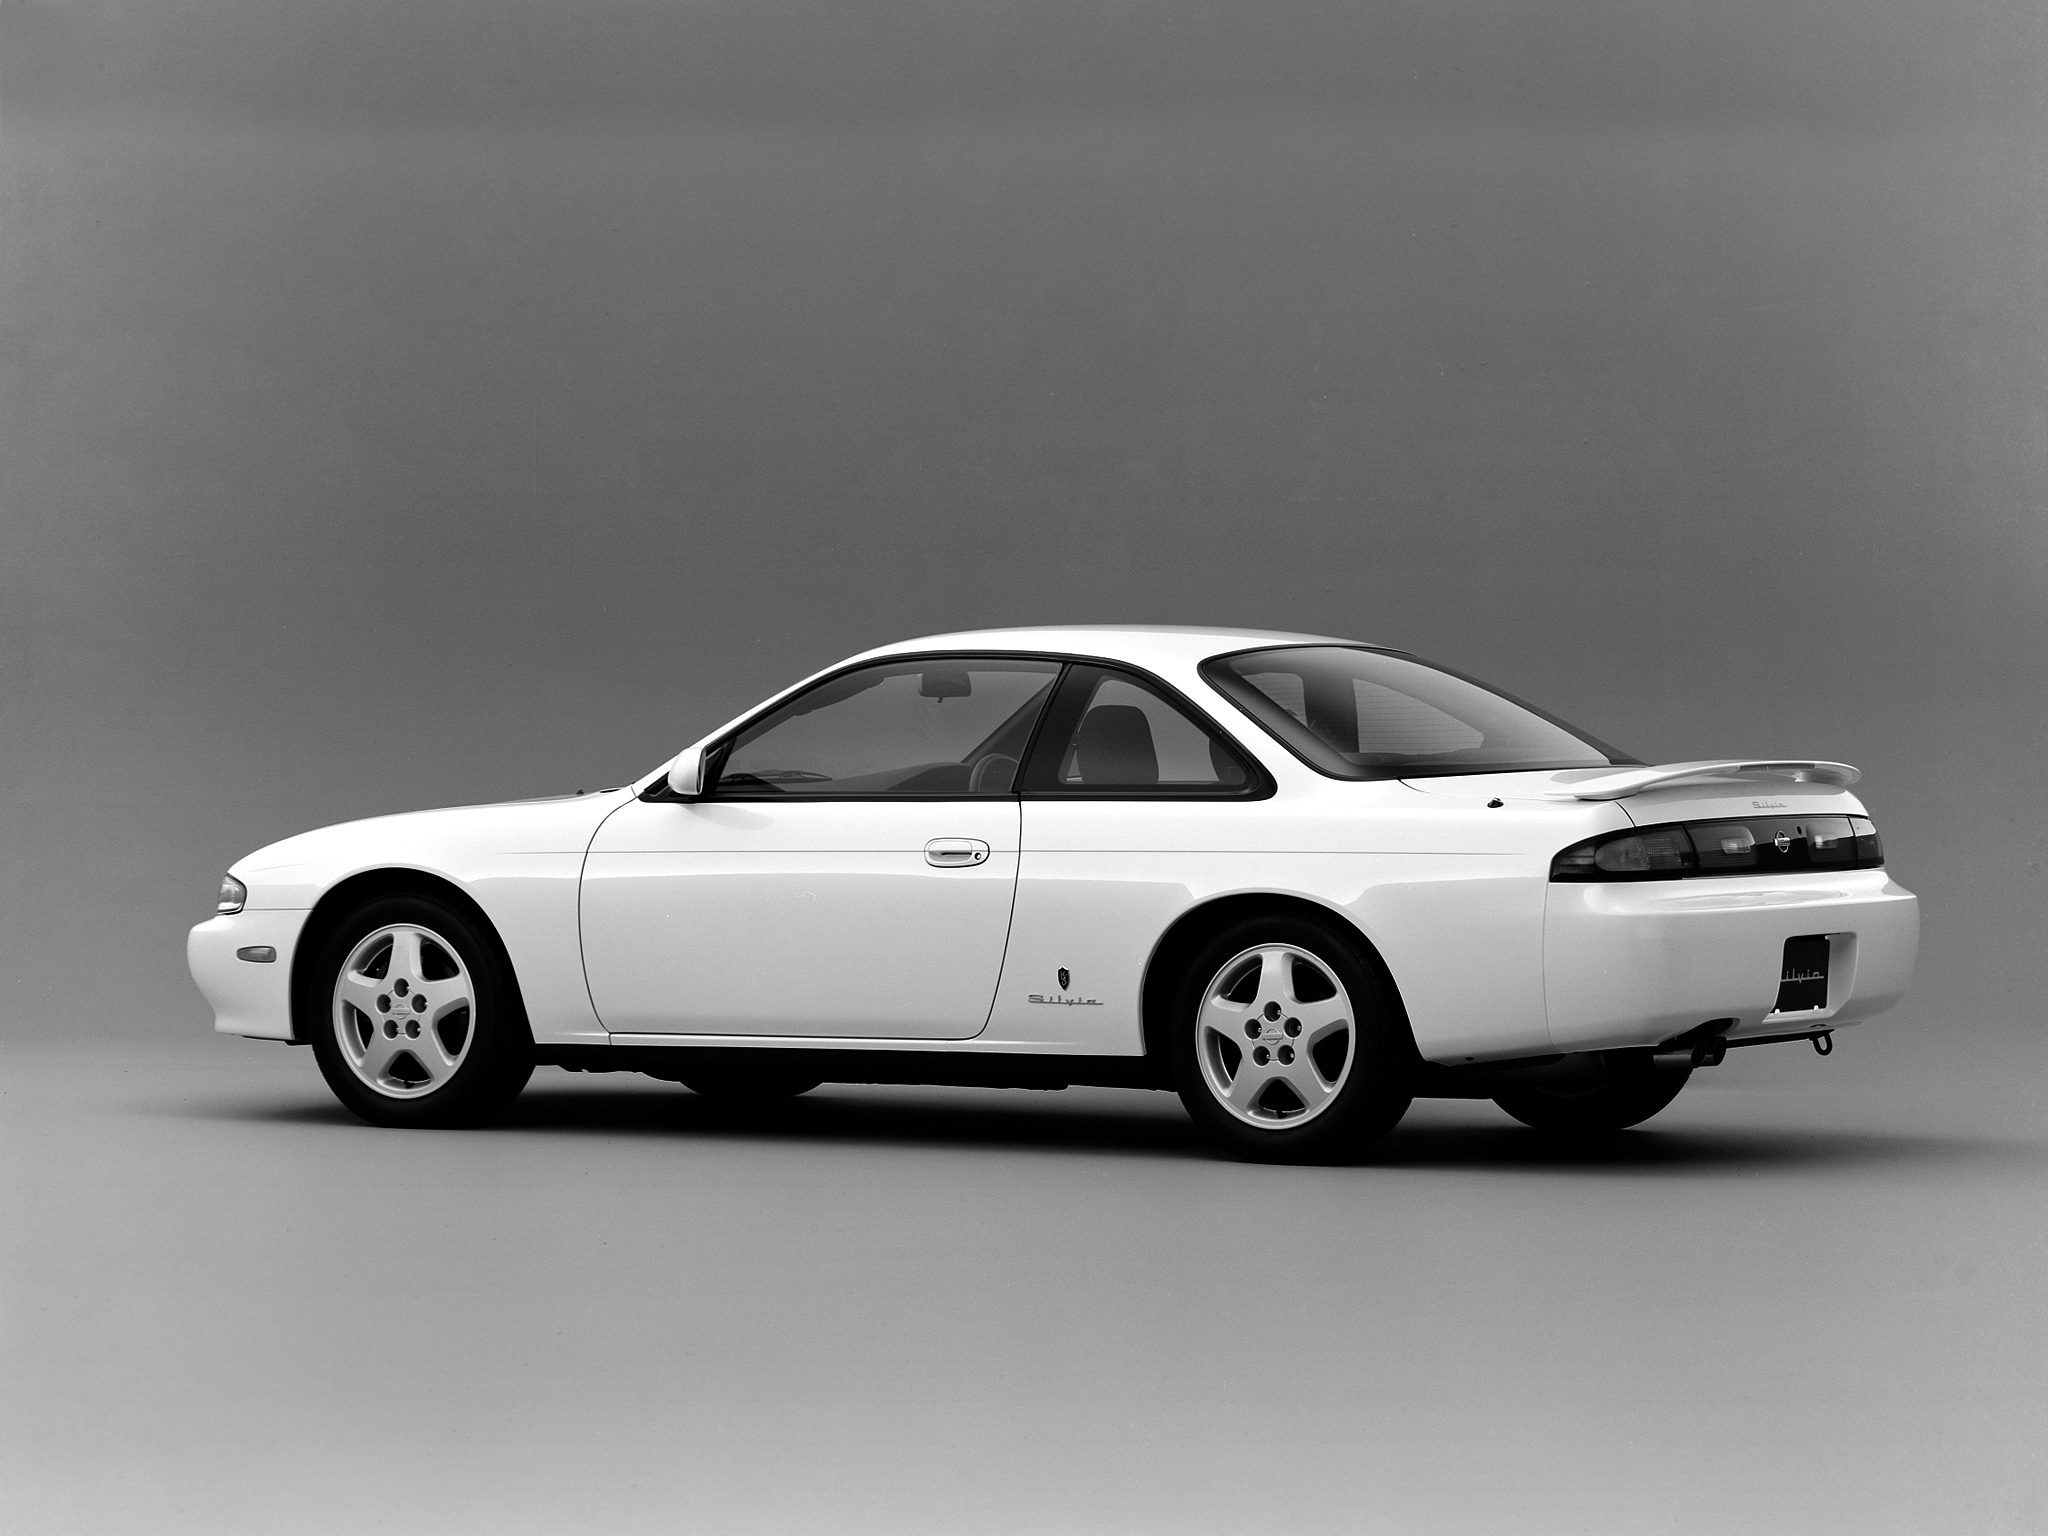 Nissan Silvia S14 2 Door Coupe 1994